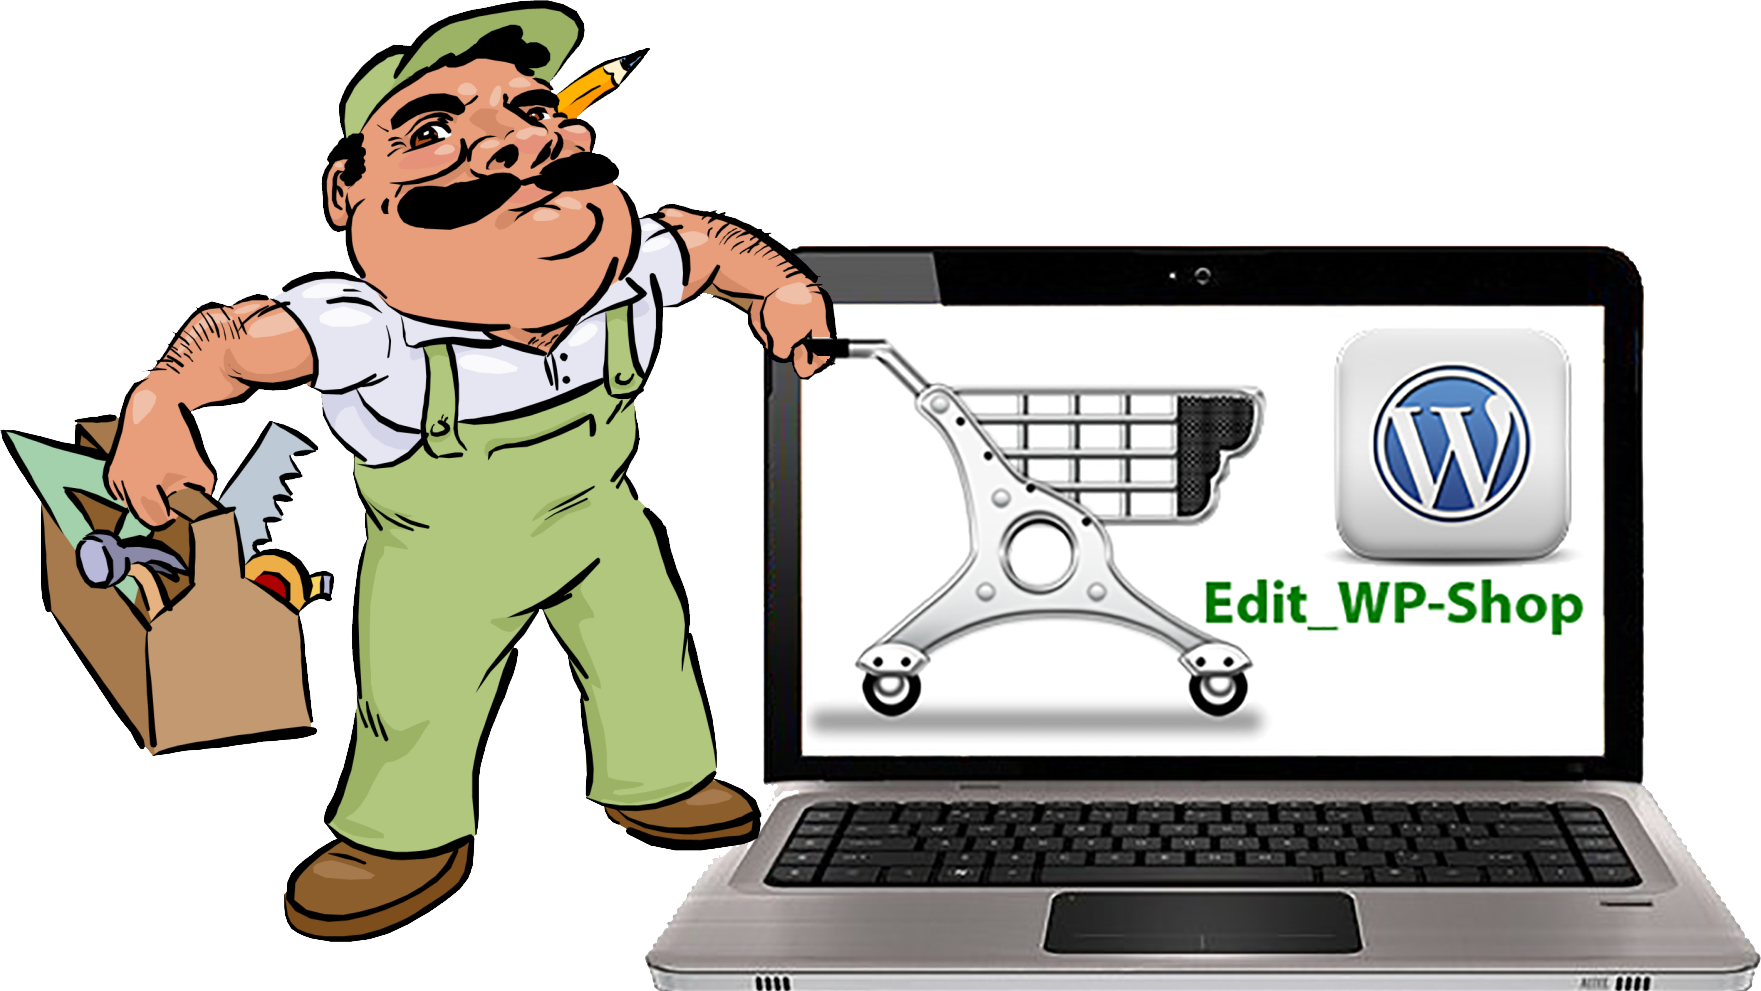 Edit_Wp-Shop-Logo.png